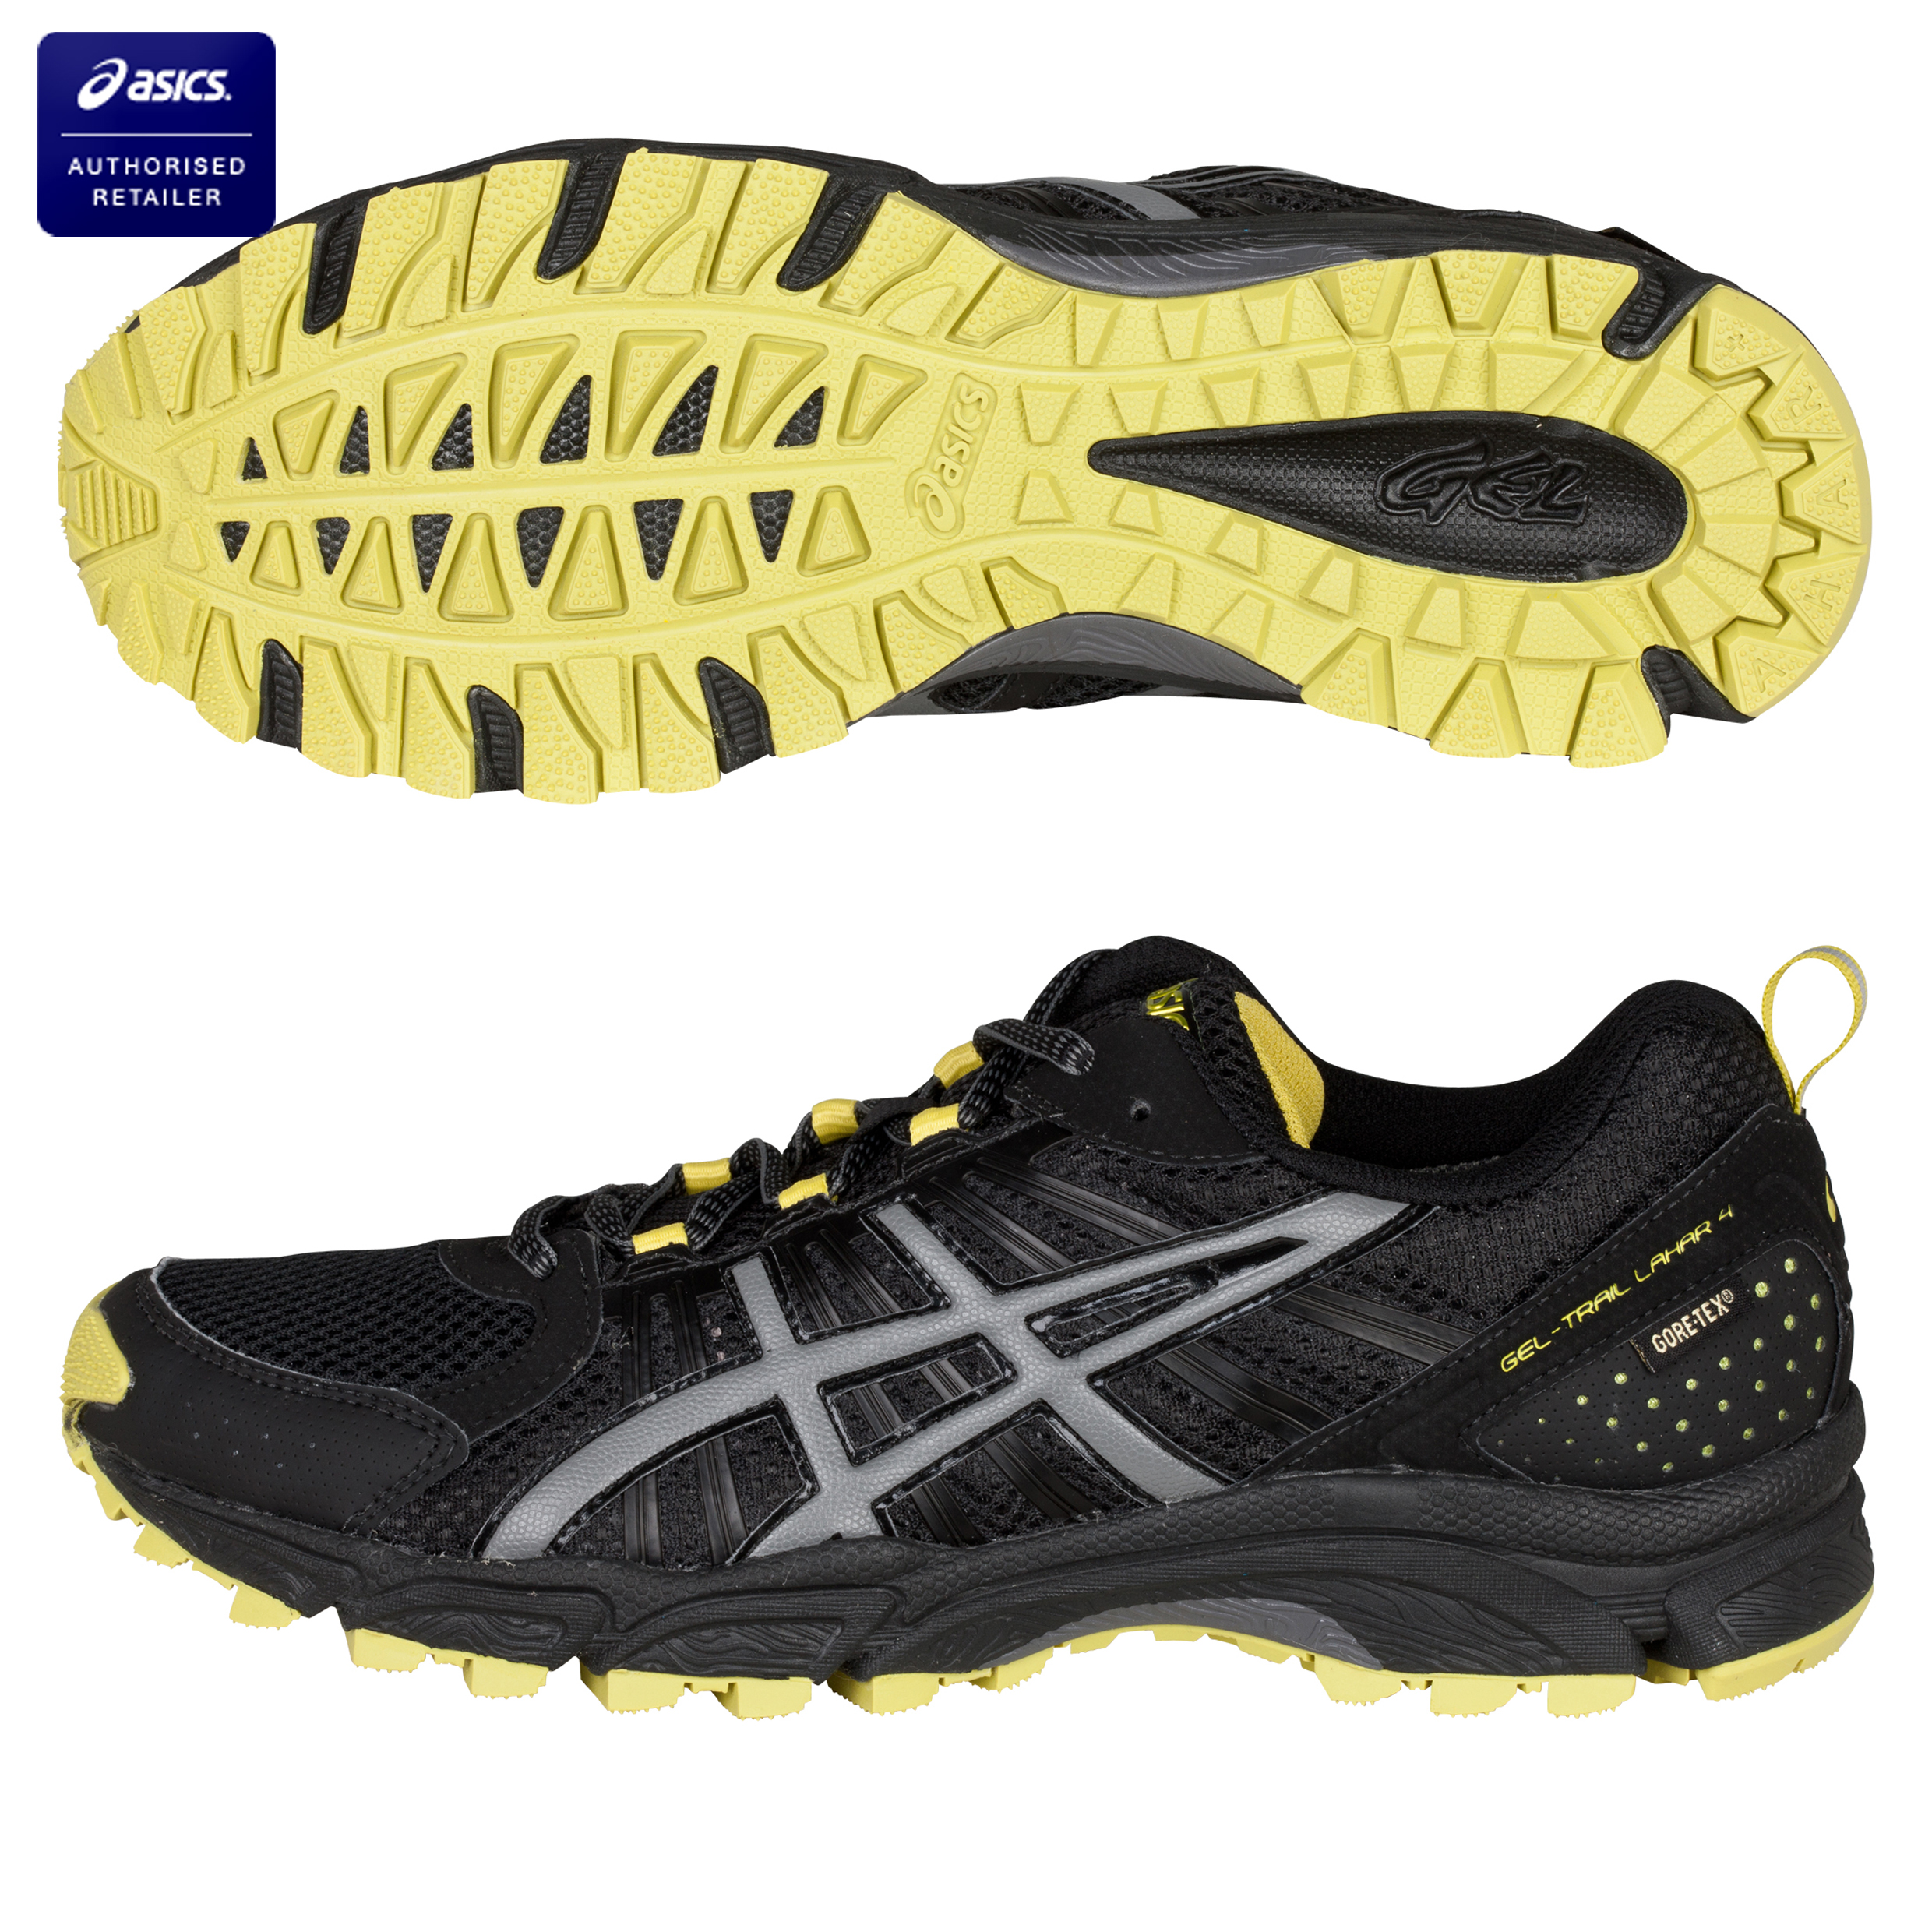 Asics Gel-Trail Lahar 4 G-TX Running Trainers - Black/Carbon/Sulphur